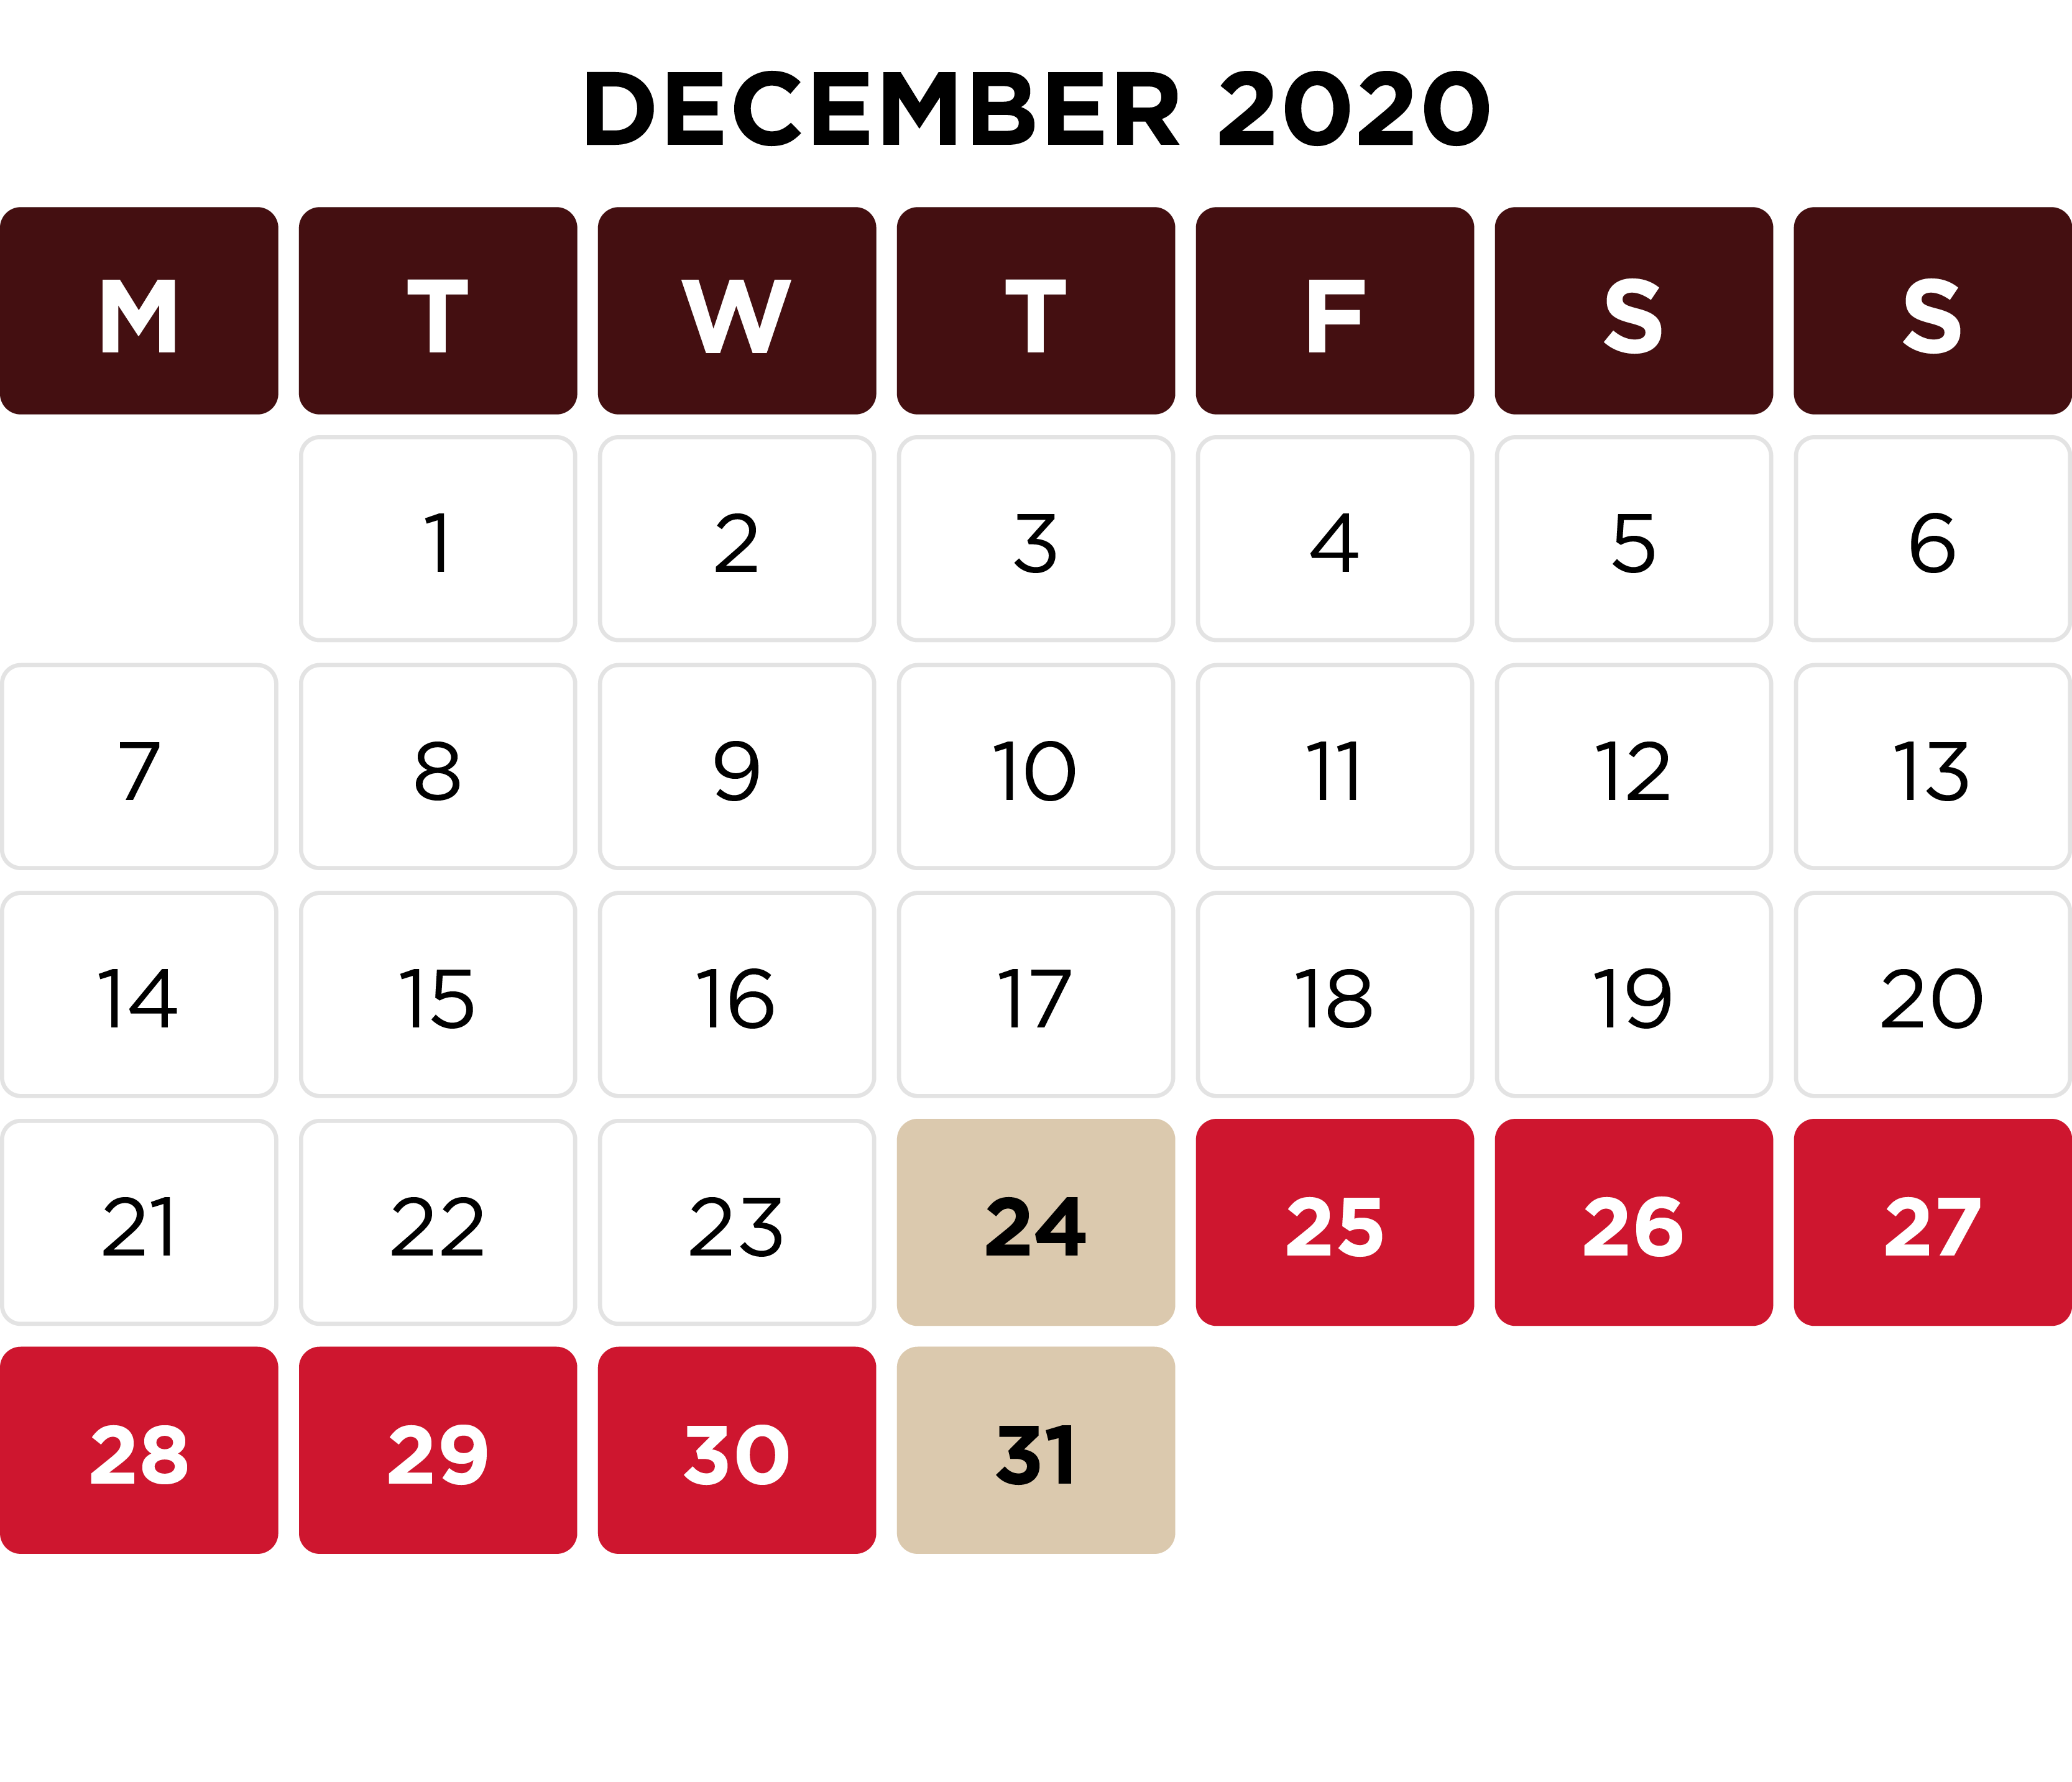 LNER1078 East Coast Upgrade 2020-21 Dates - Web Graphic Month Supply 800x688px - 02 December 2020.png